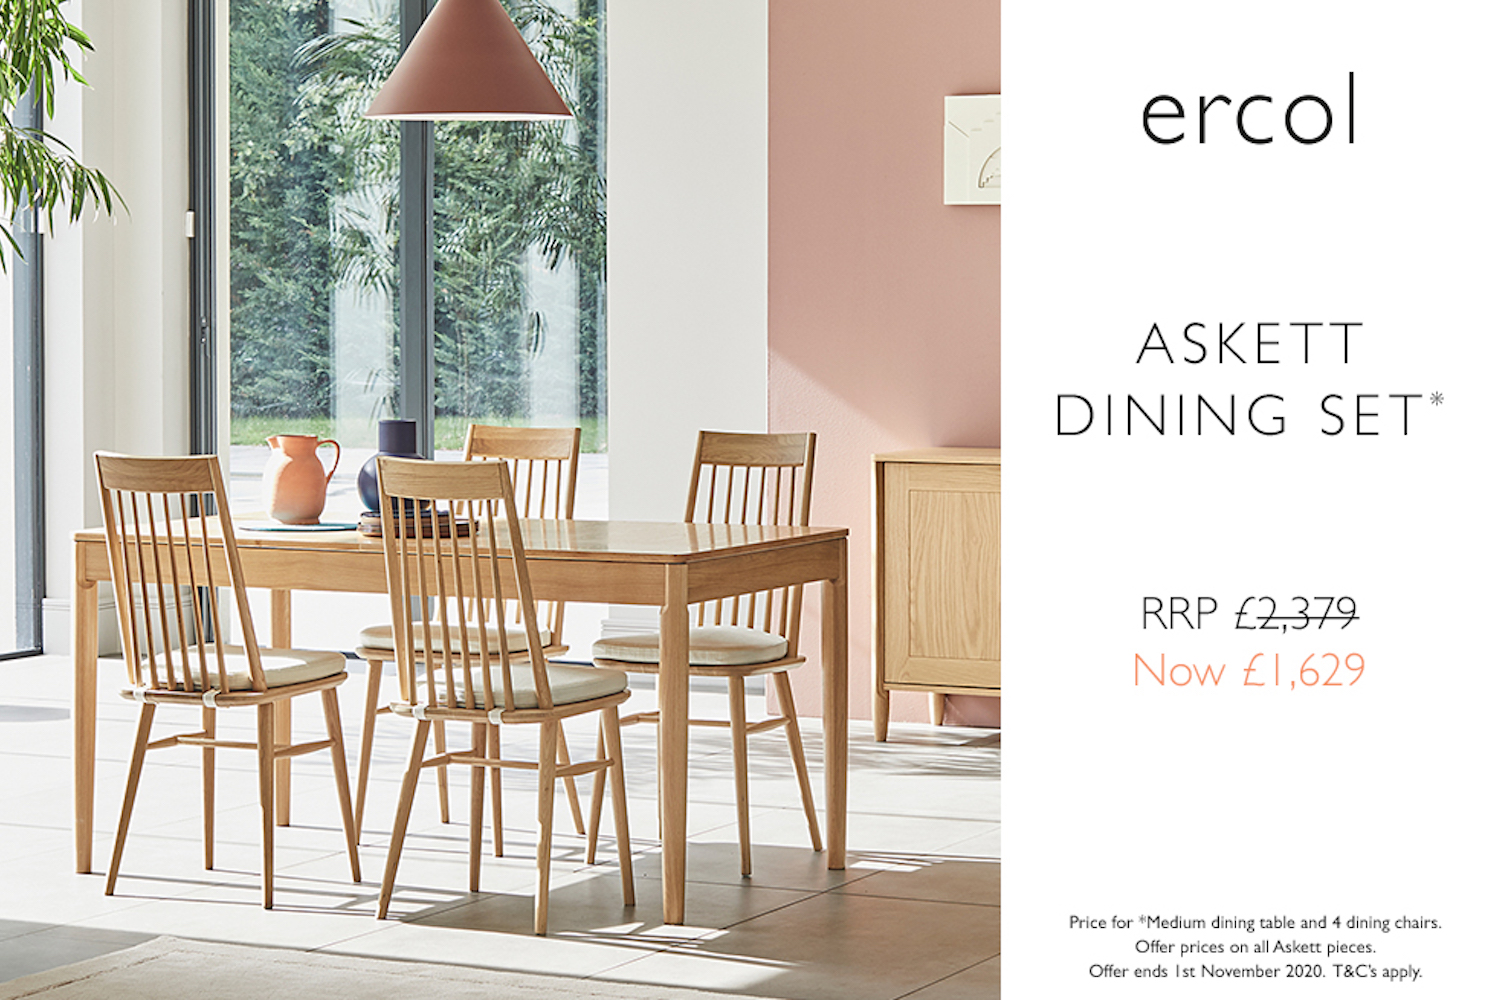 ercol Askett promotion